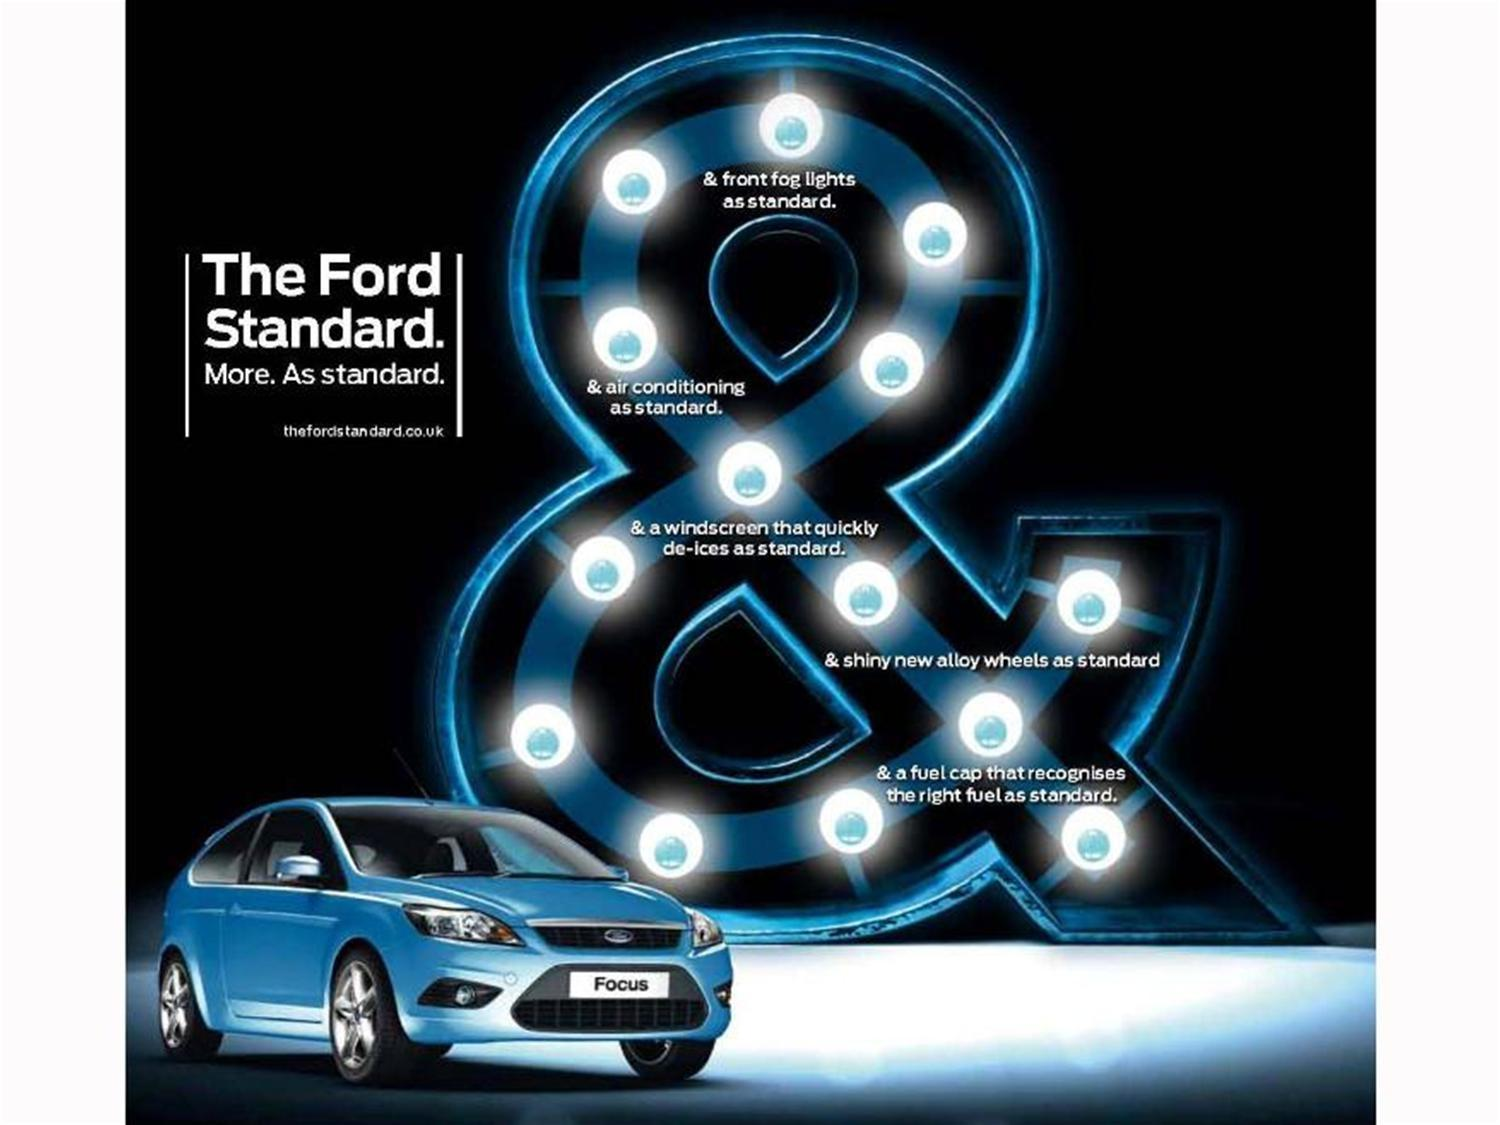 Ford goes back to basics with new ad campaign